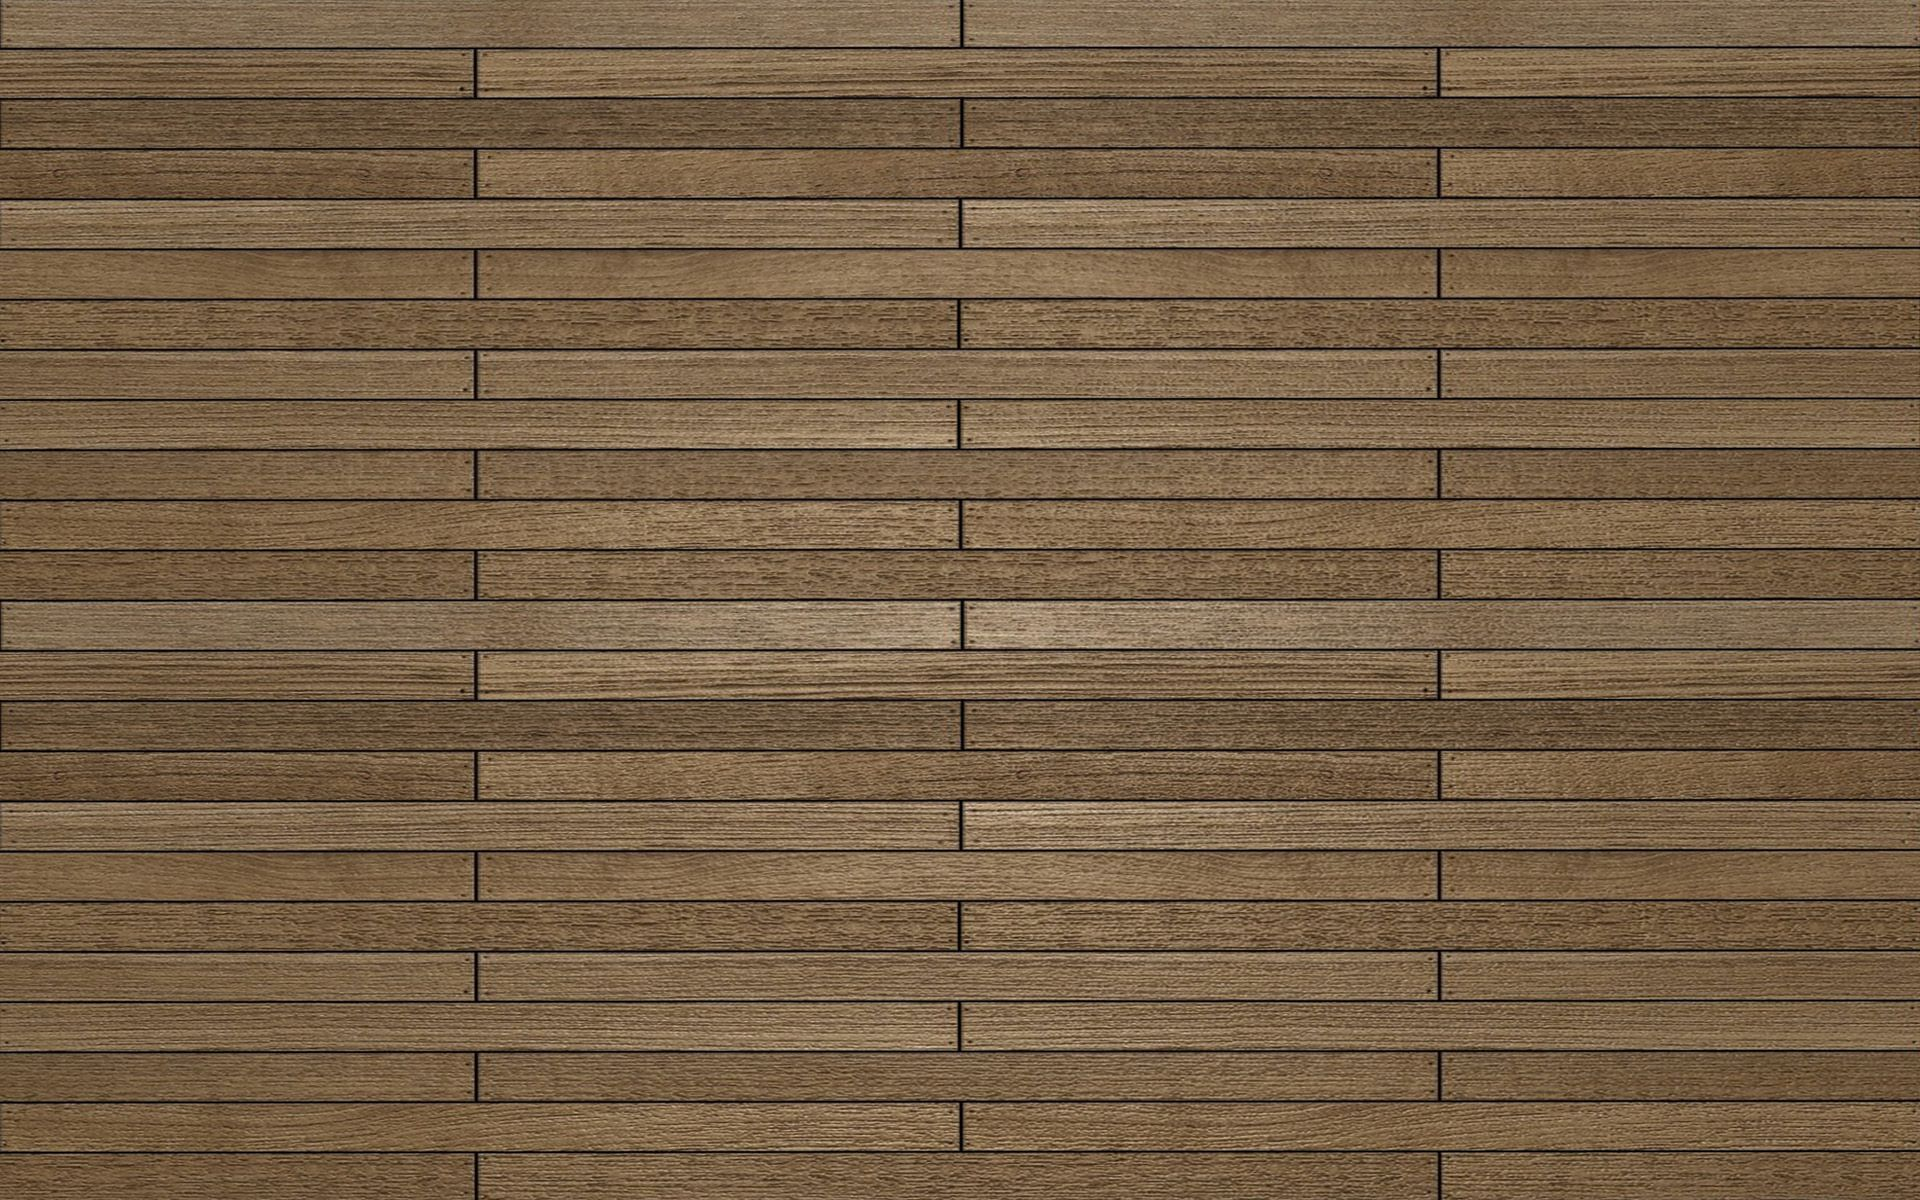 Floor Wood Wood Flooring Background Awesome 31006 Material Texture